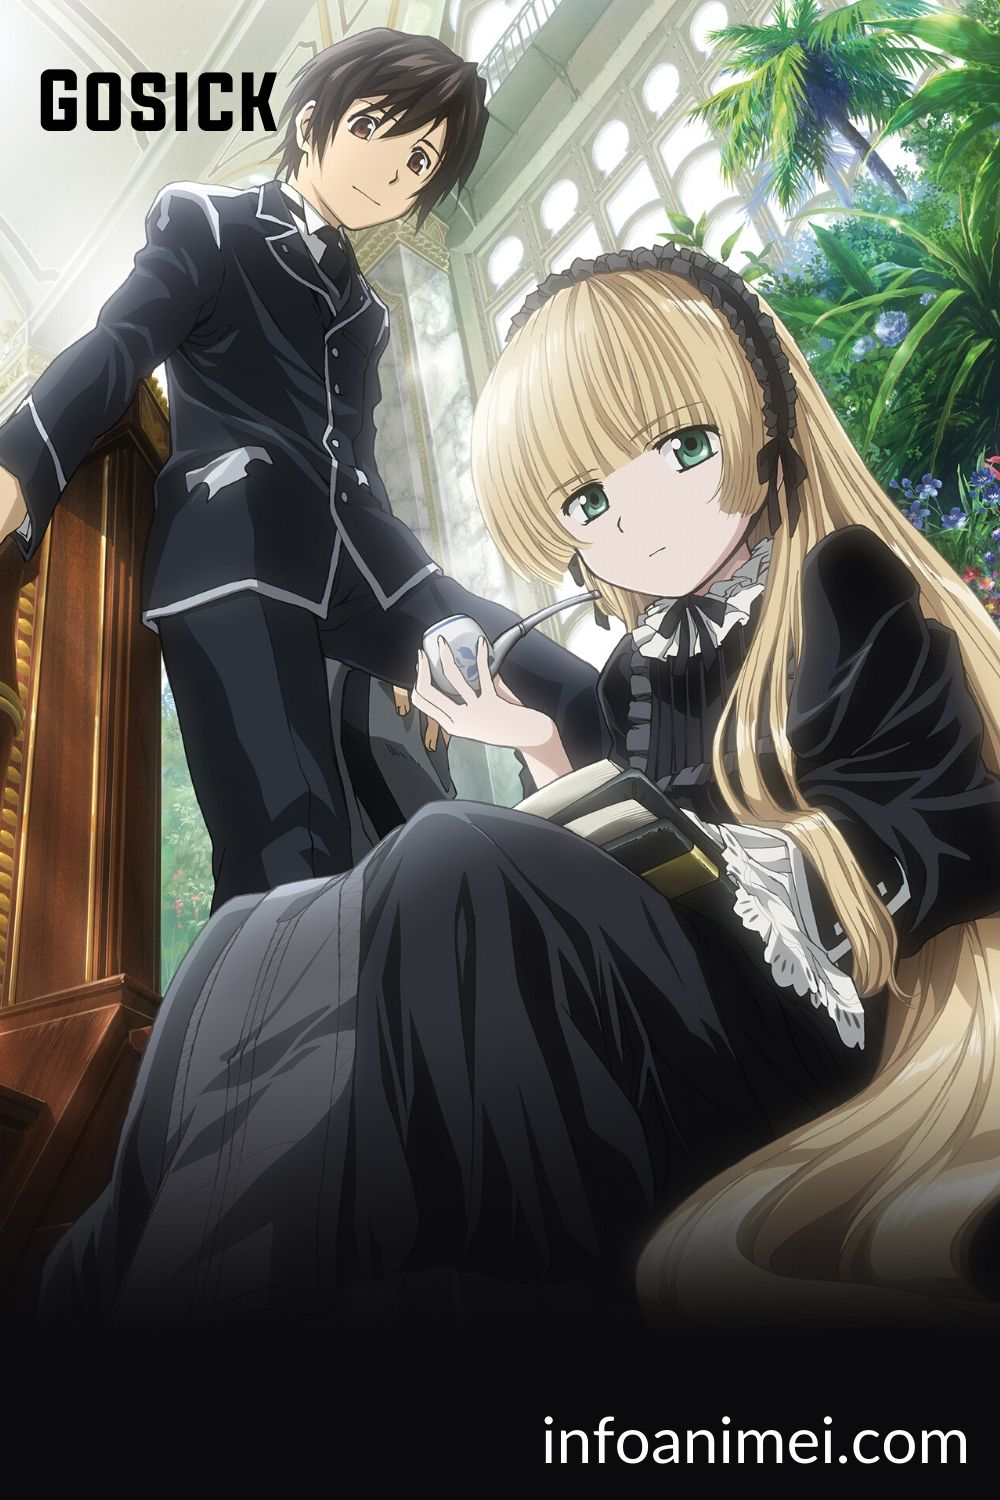 Gosick Best Drama Anime Movie Or Anime Characters in